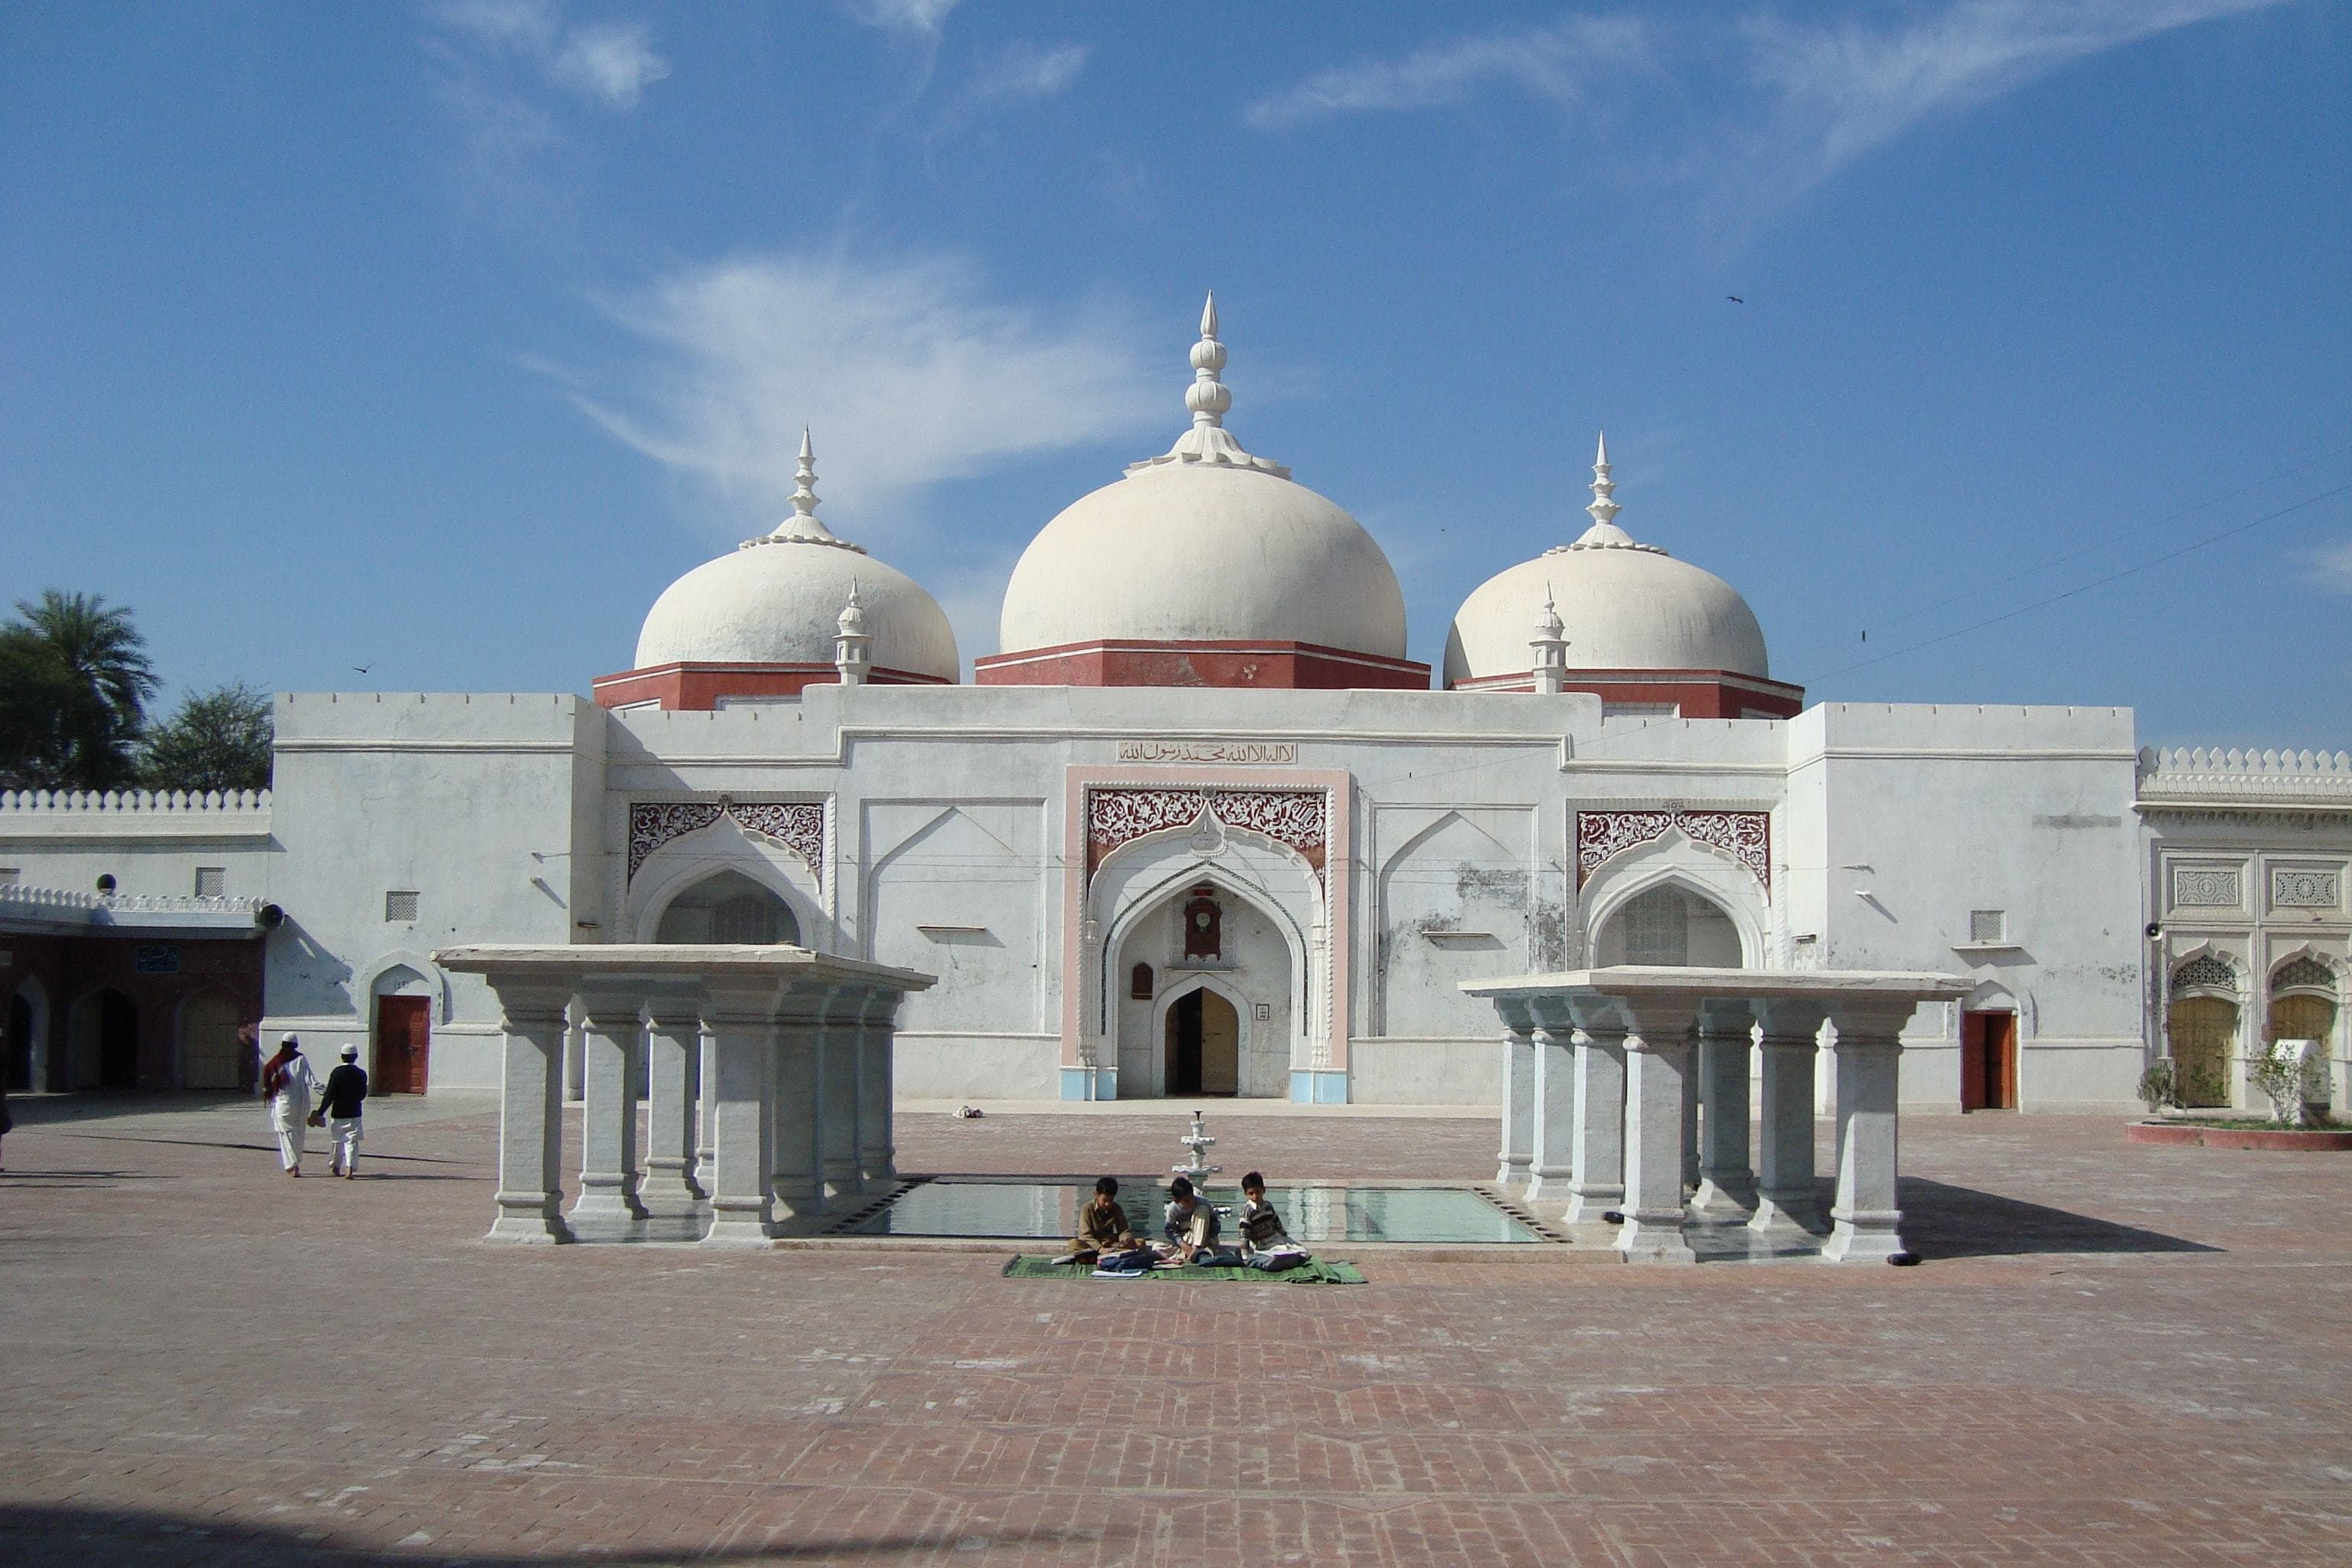 The Sher Shah Mosque at Bhera.